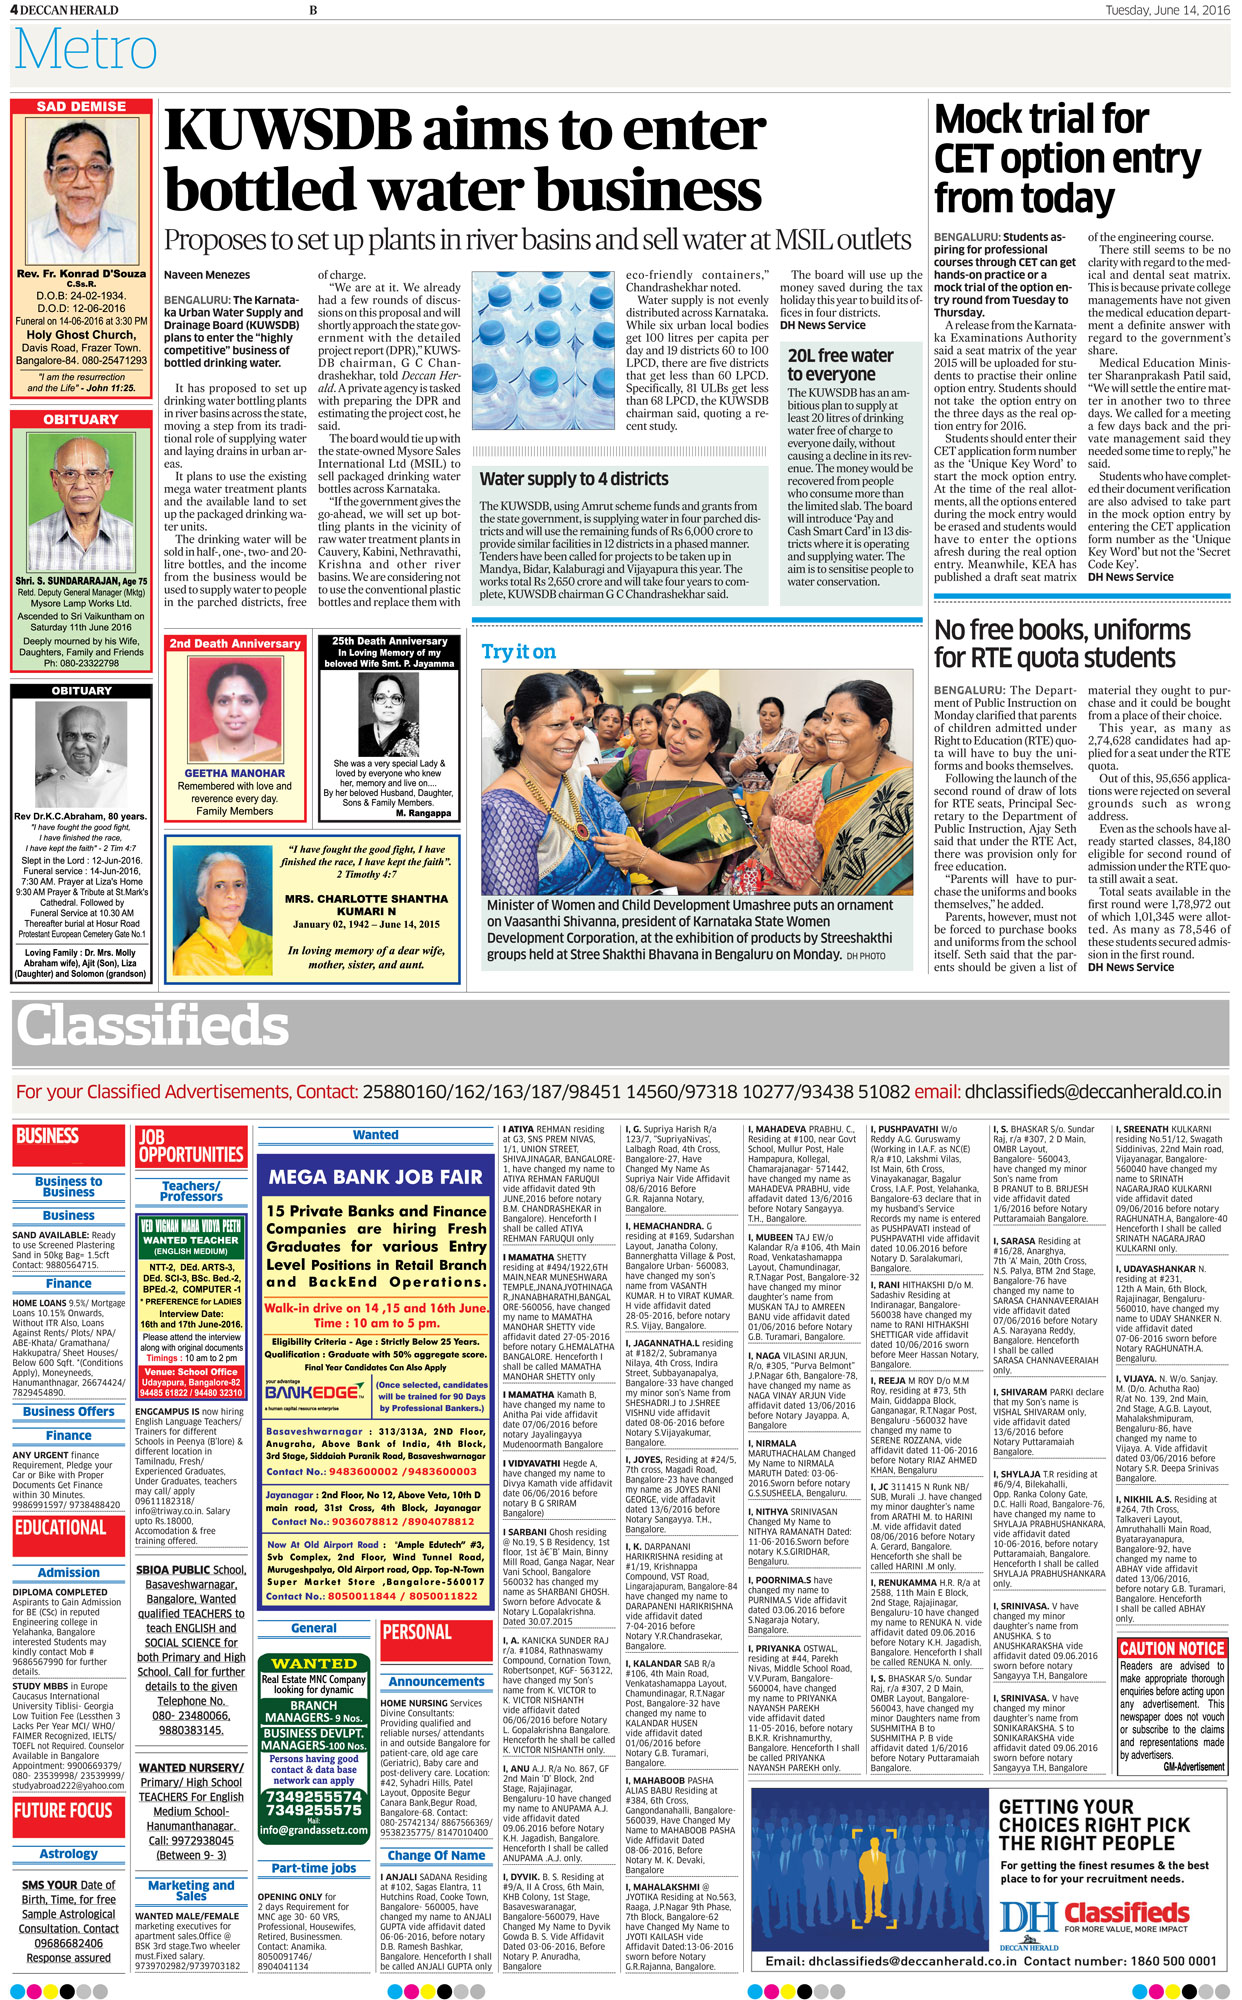 Deccan Herald Classified Ad Rates